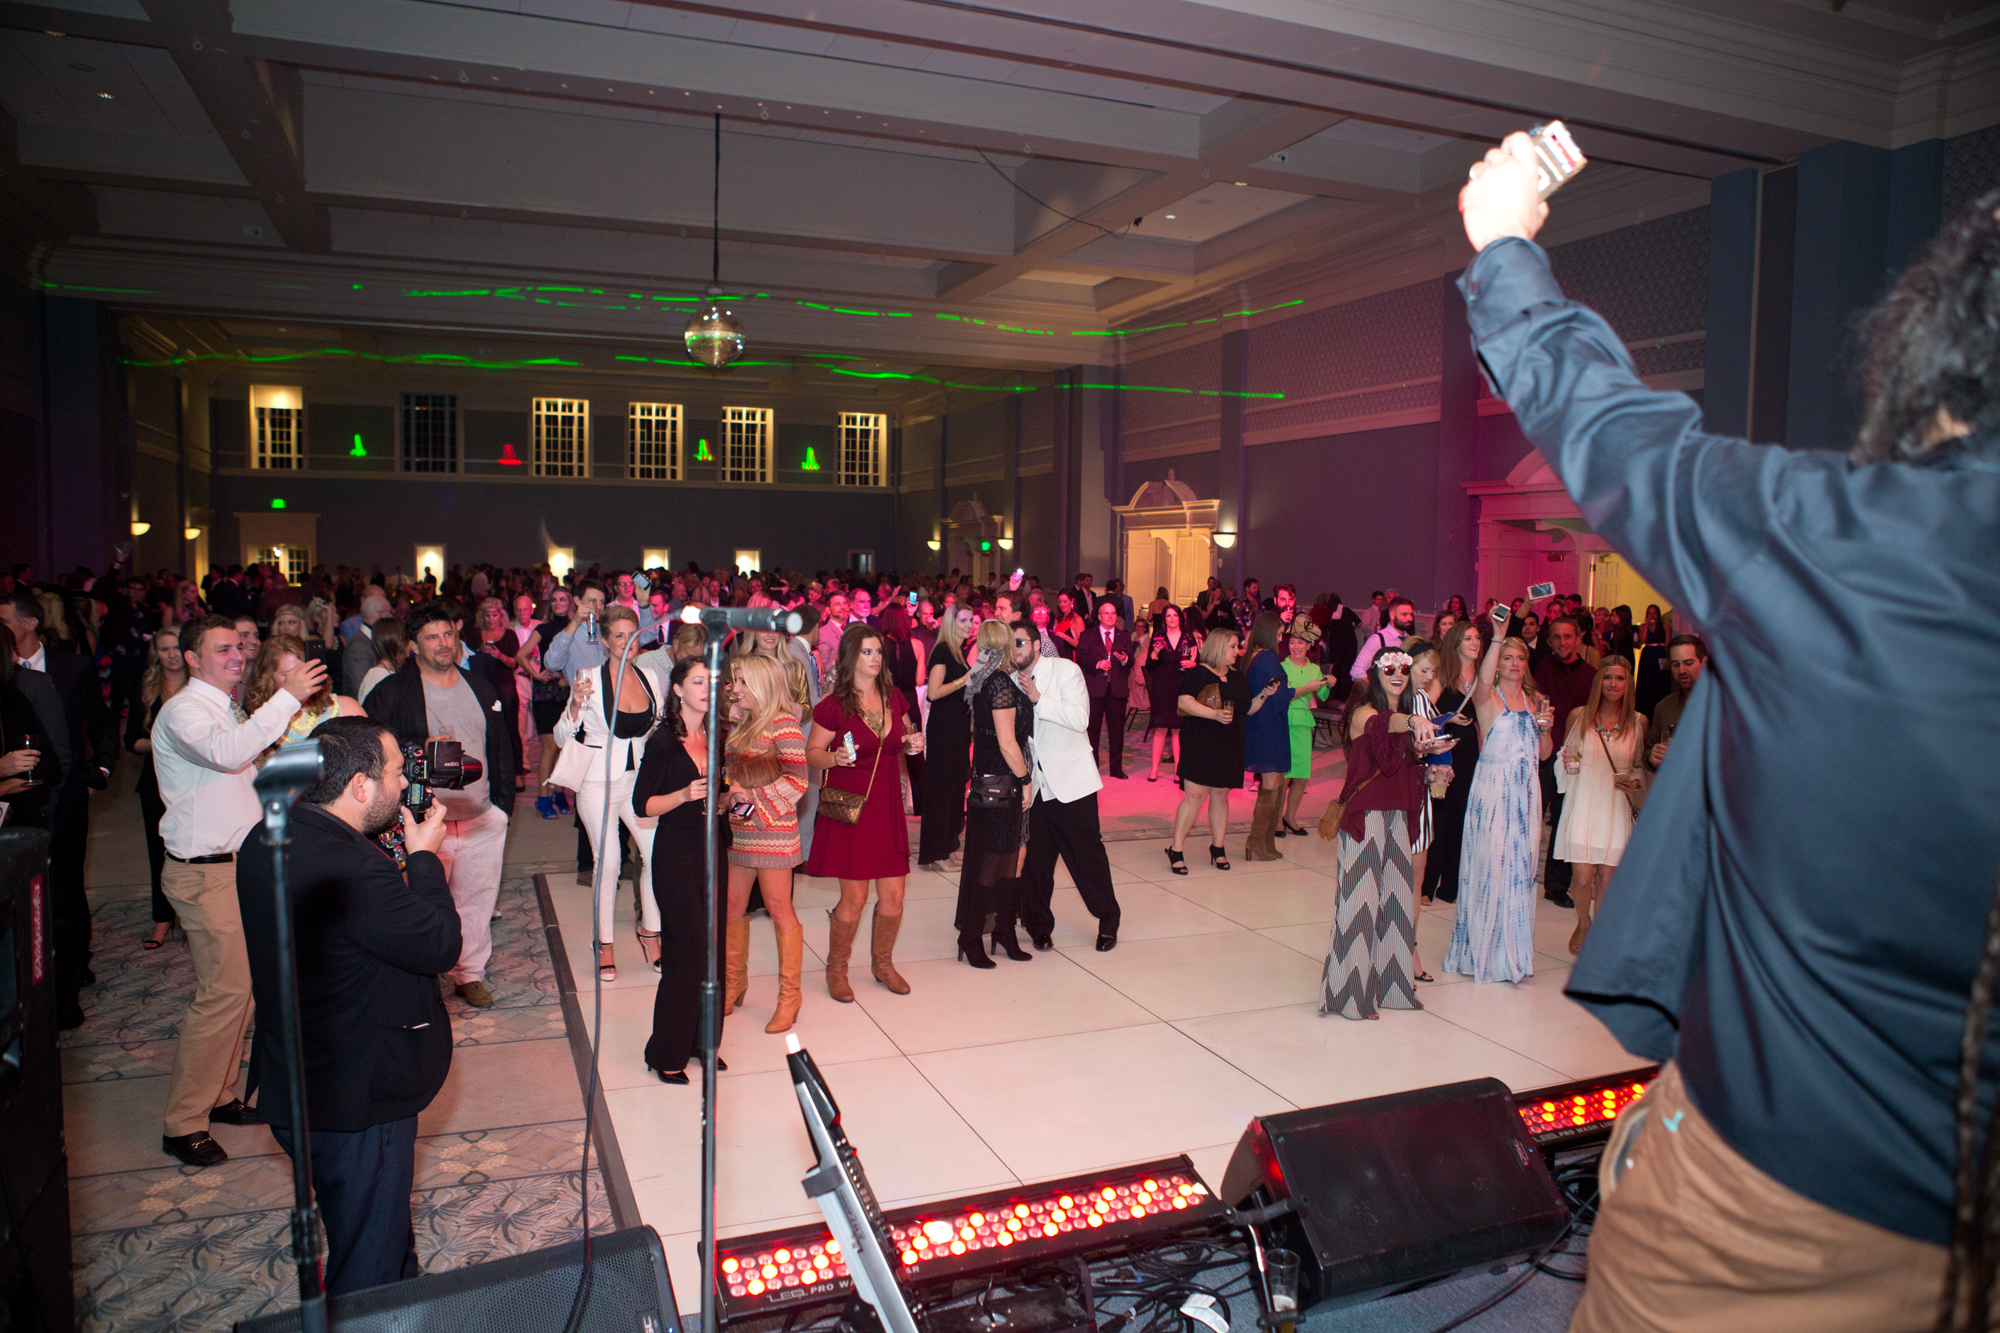 The party got started as guests danced to music from the Dubplates.